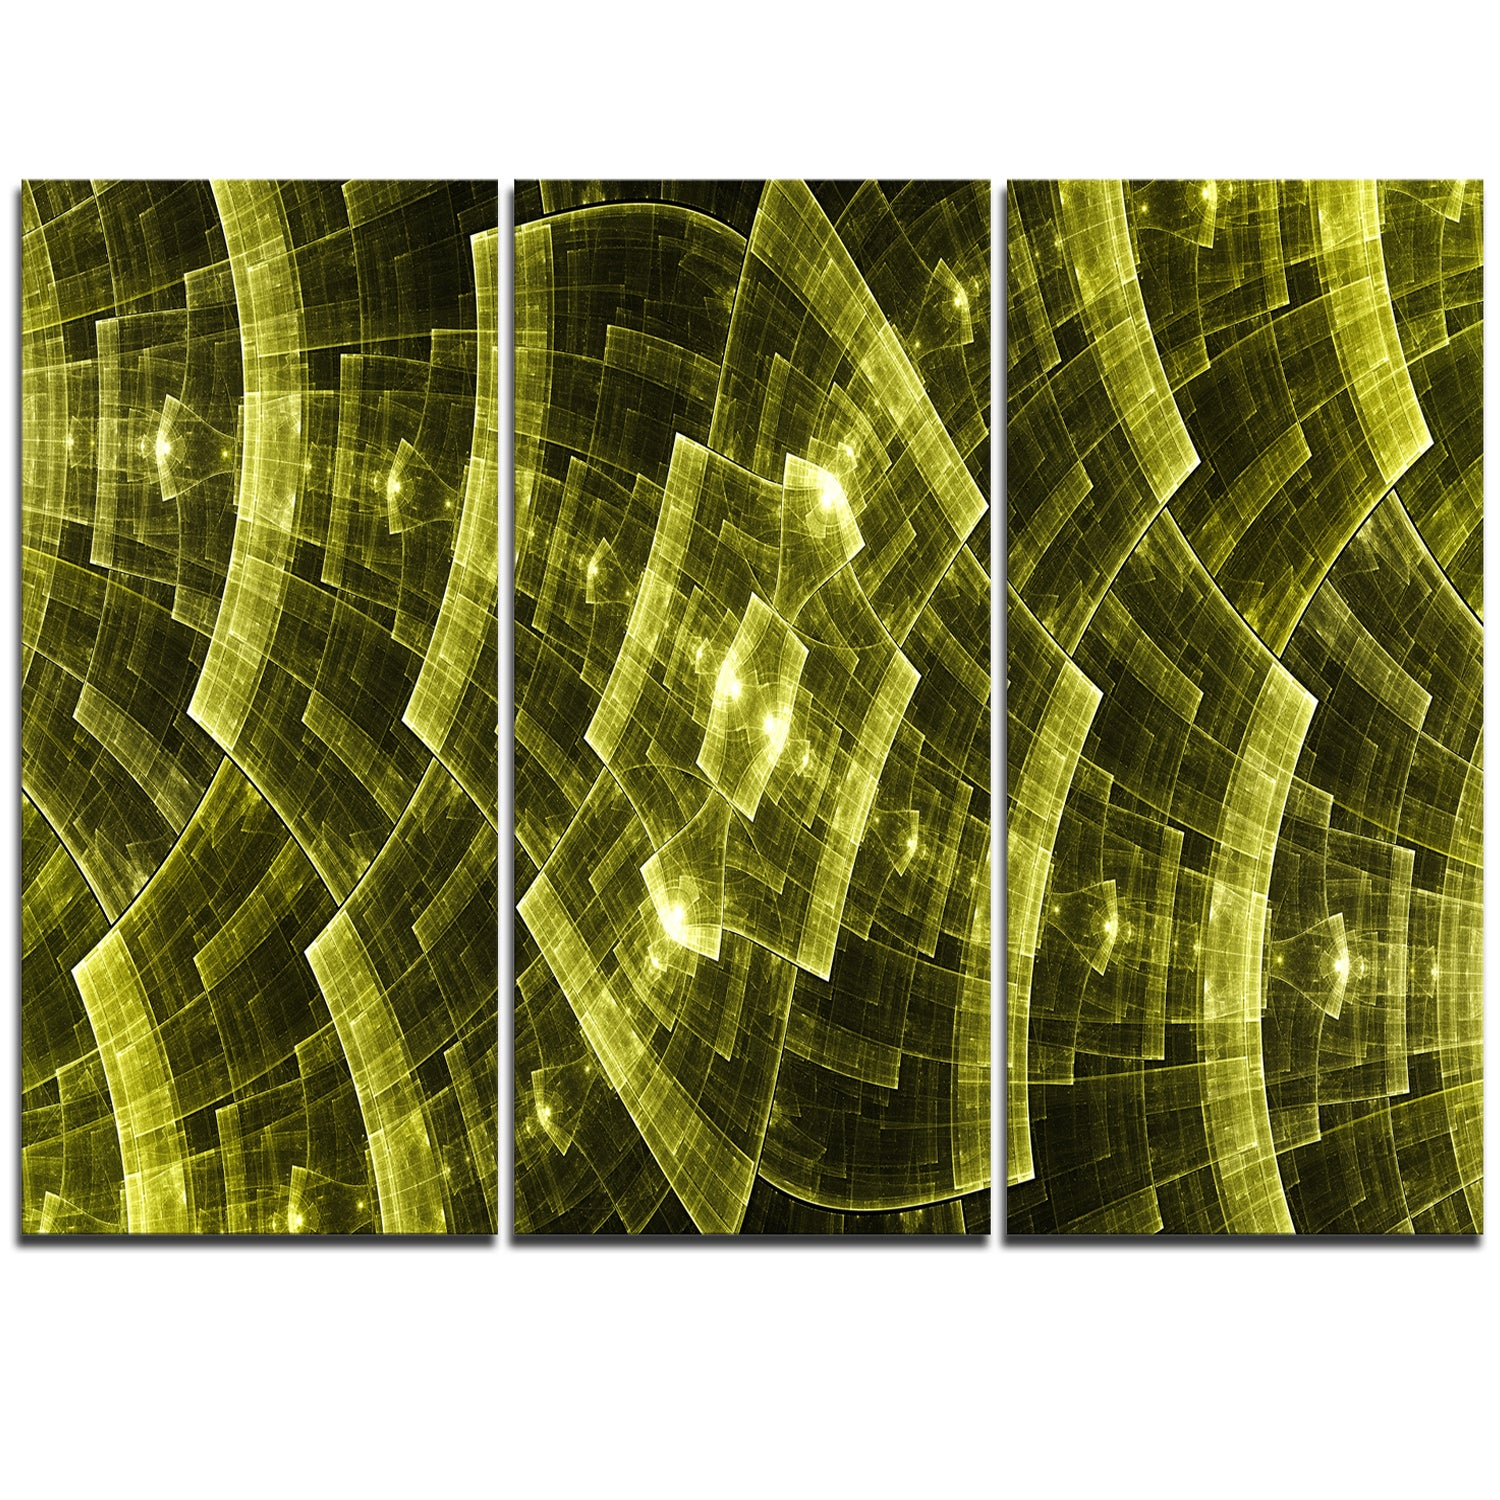 Shop Bright Yellow Fractal Flower Grid - Abstract Art on Canvas ...